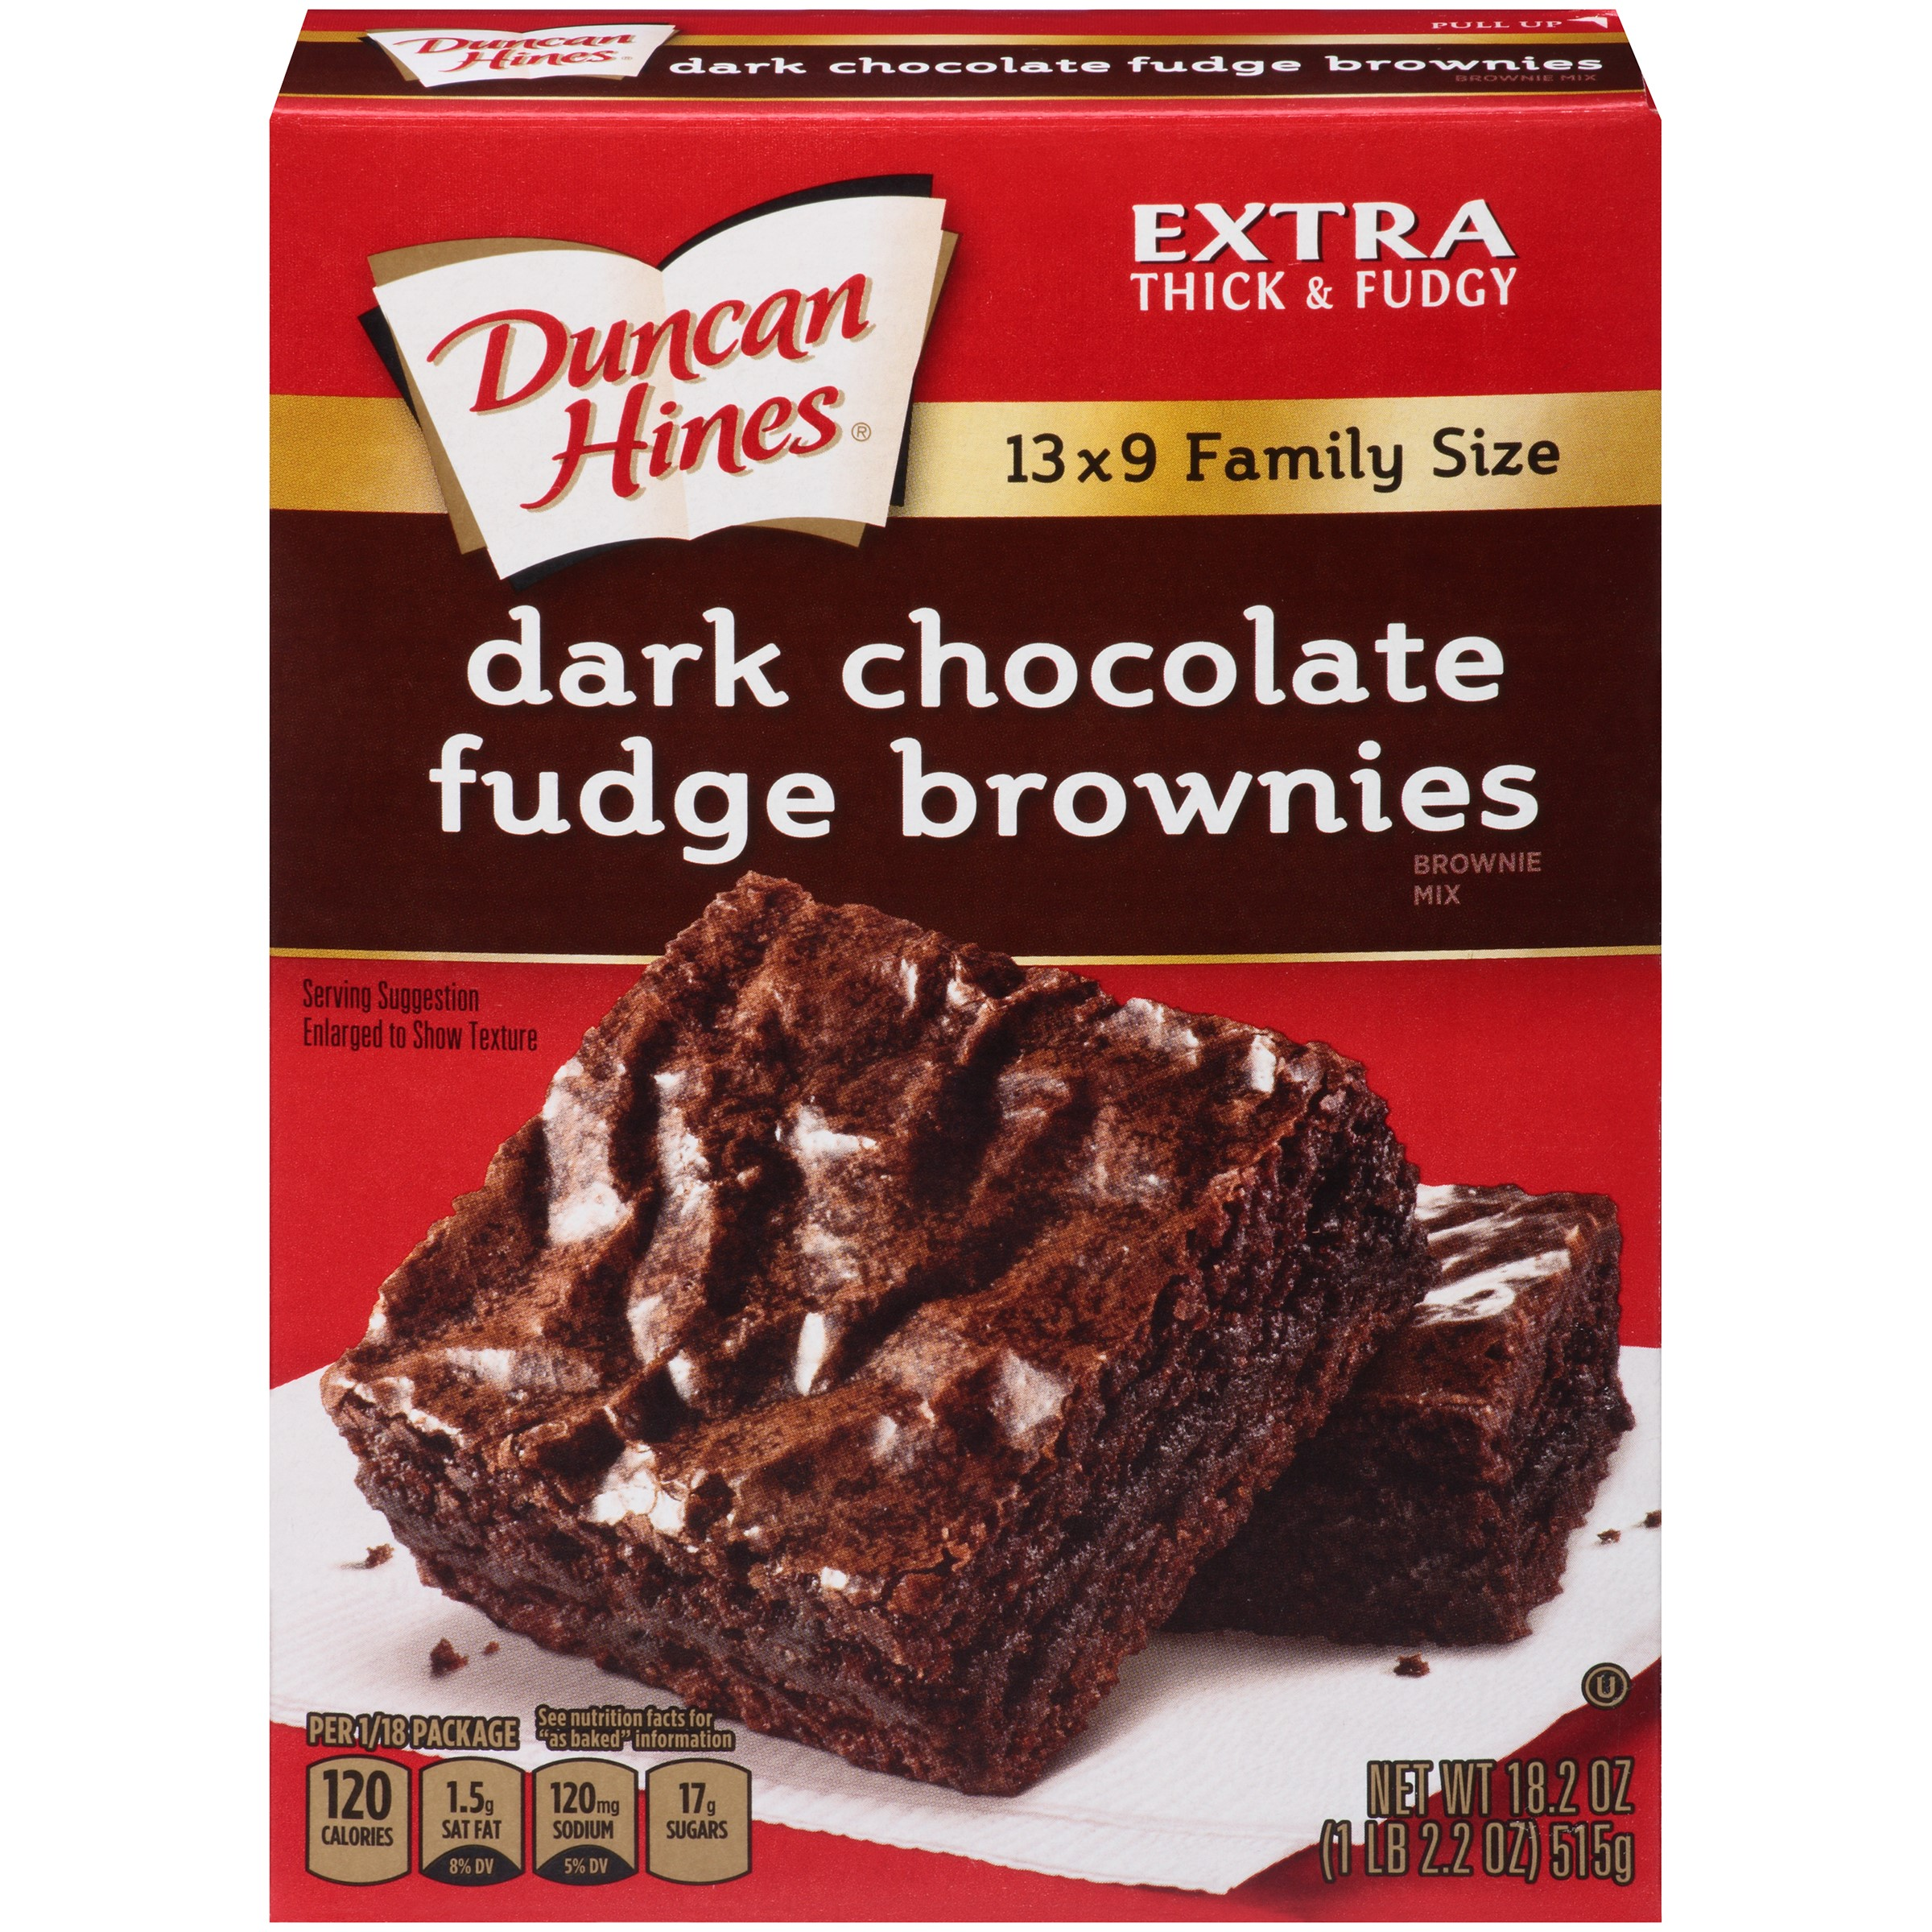 Duncan Hines Dark Chocolate Fudge Brownies Brownie Mix, 18.2 Oz by Pinnacle Foods